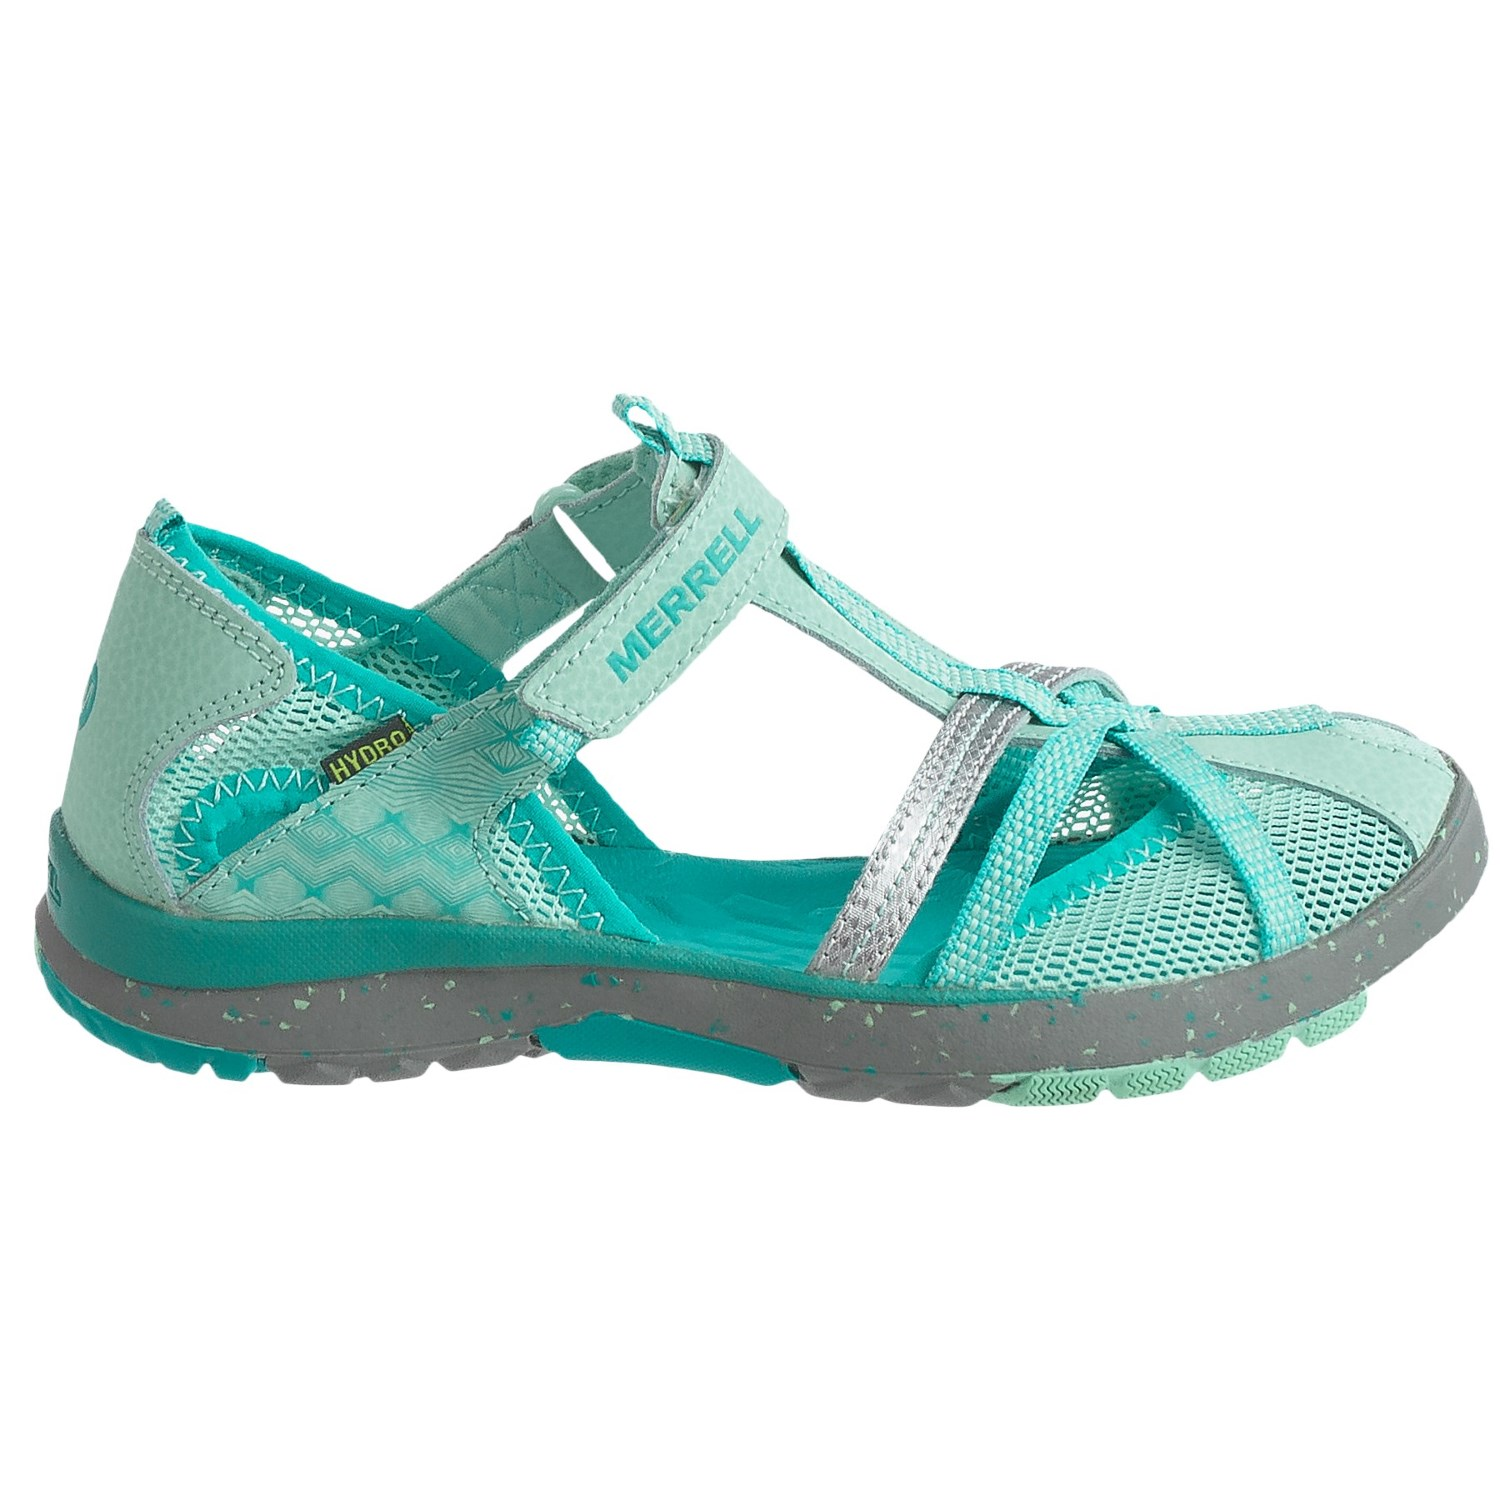 6e7cd008eac Merrell Hydro Monarch Sandals (For Youth Girls) - Save 50%